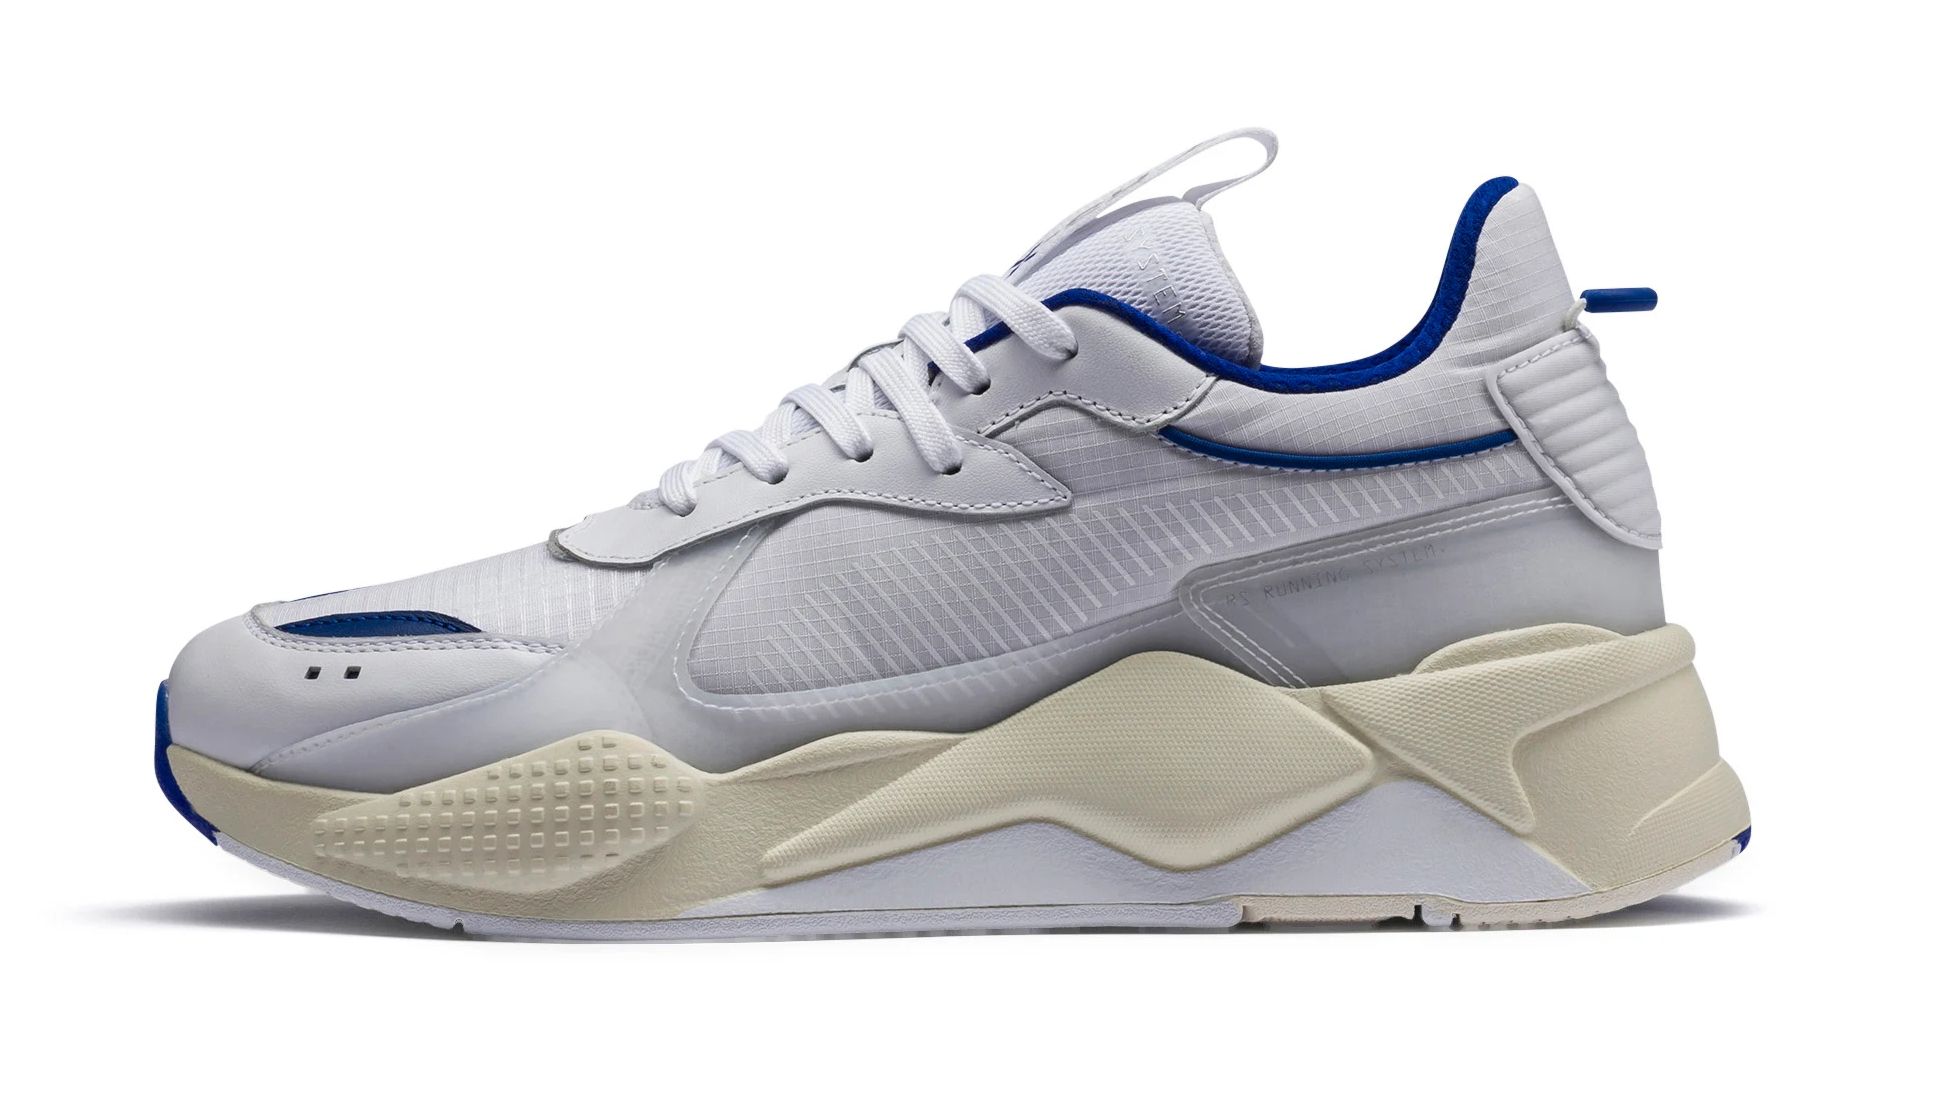 puma RS-X TECH, sneakers, sale, korting